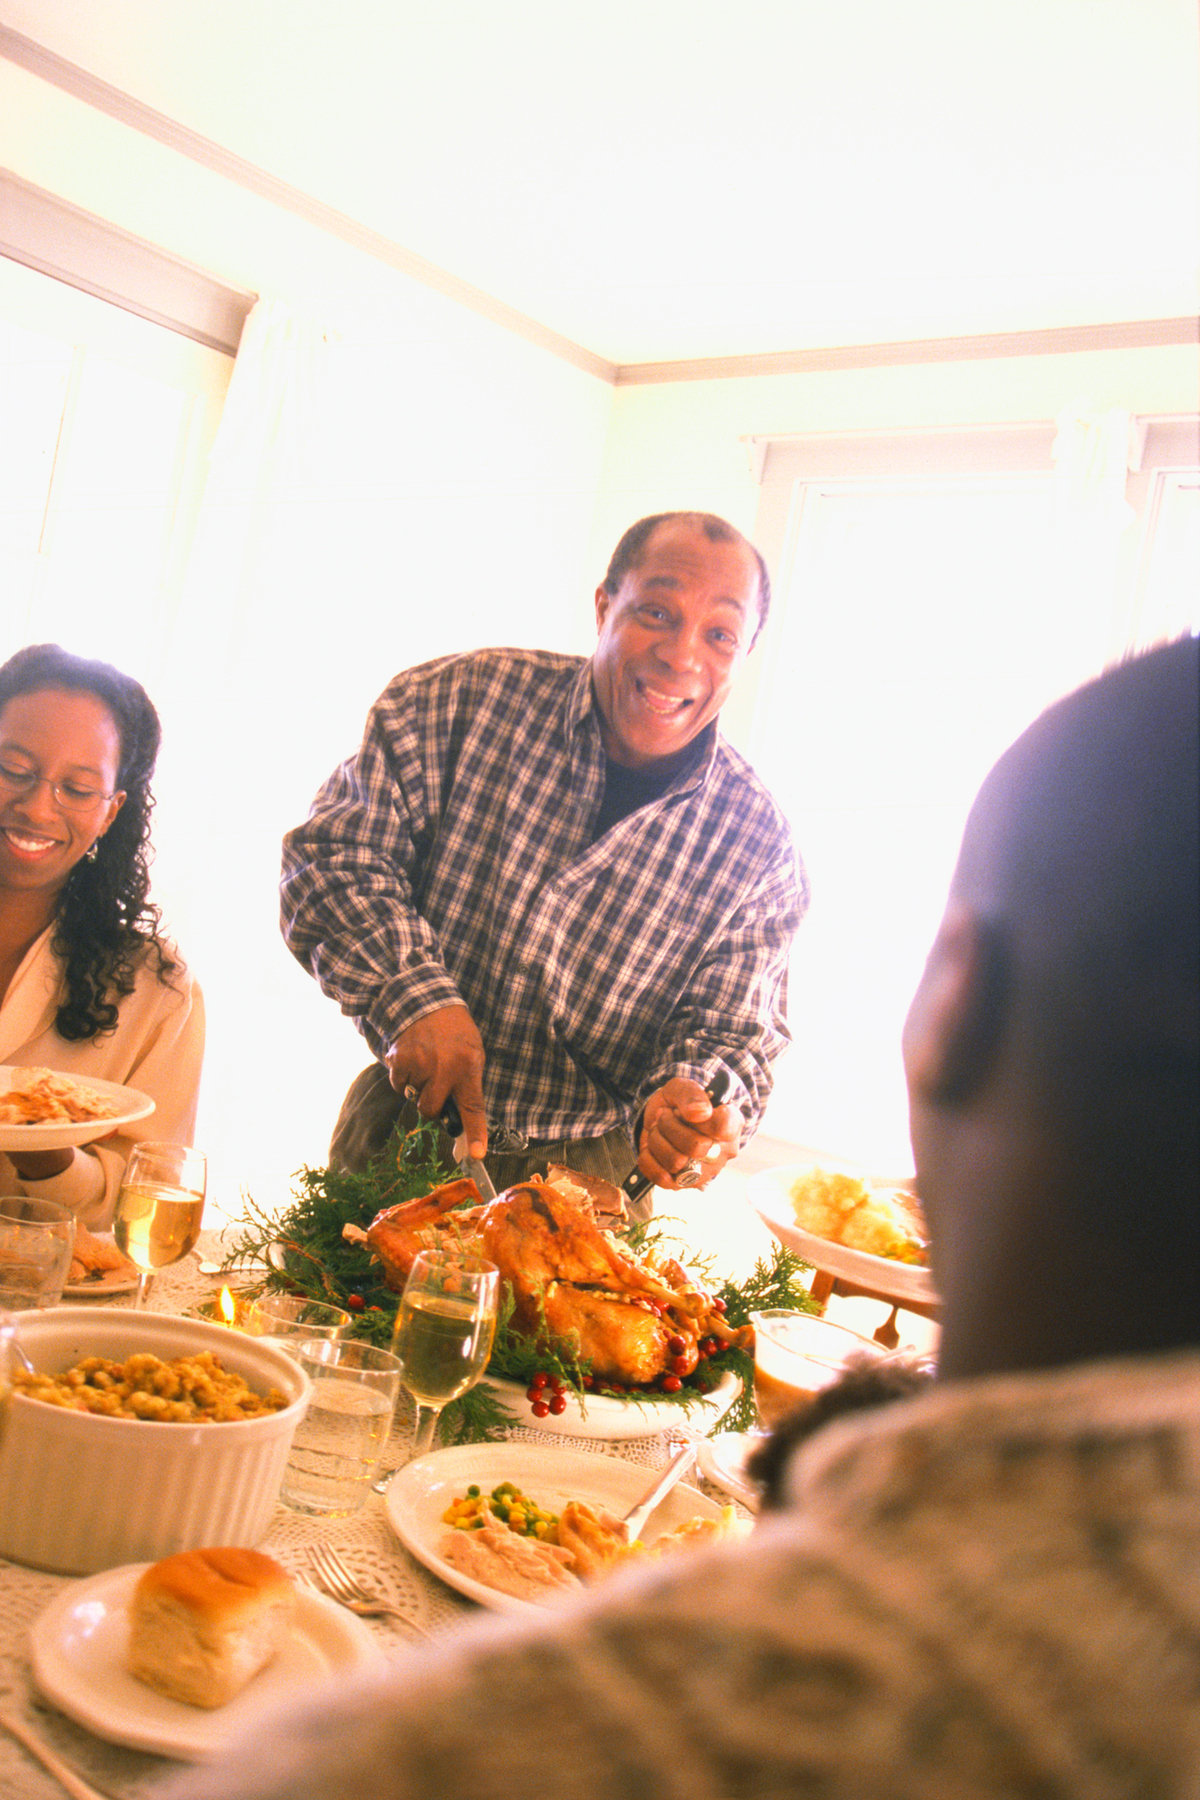 Man carving turkey at family dinner